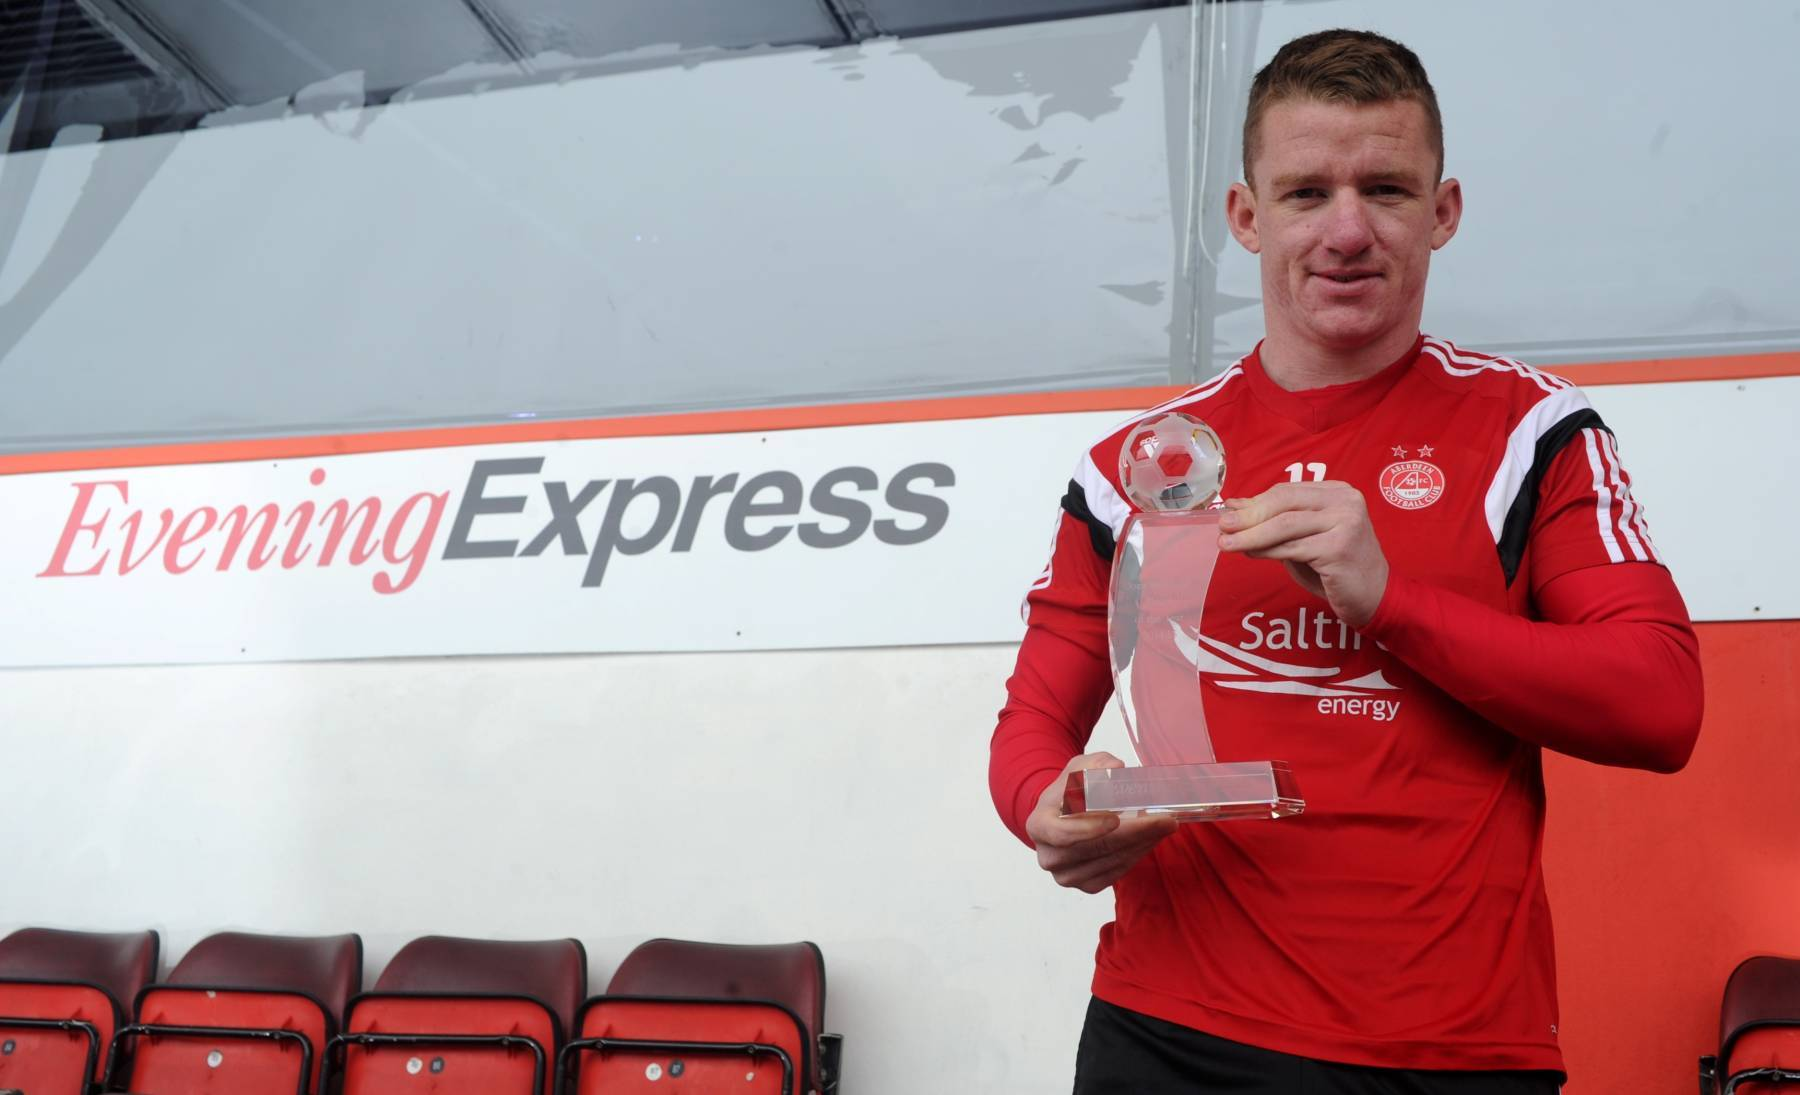 Jonny Hayes won the Evening Express Player of the Year award. Picture by Darrell Benns.